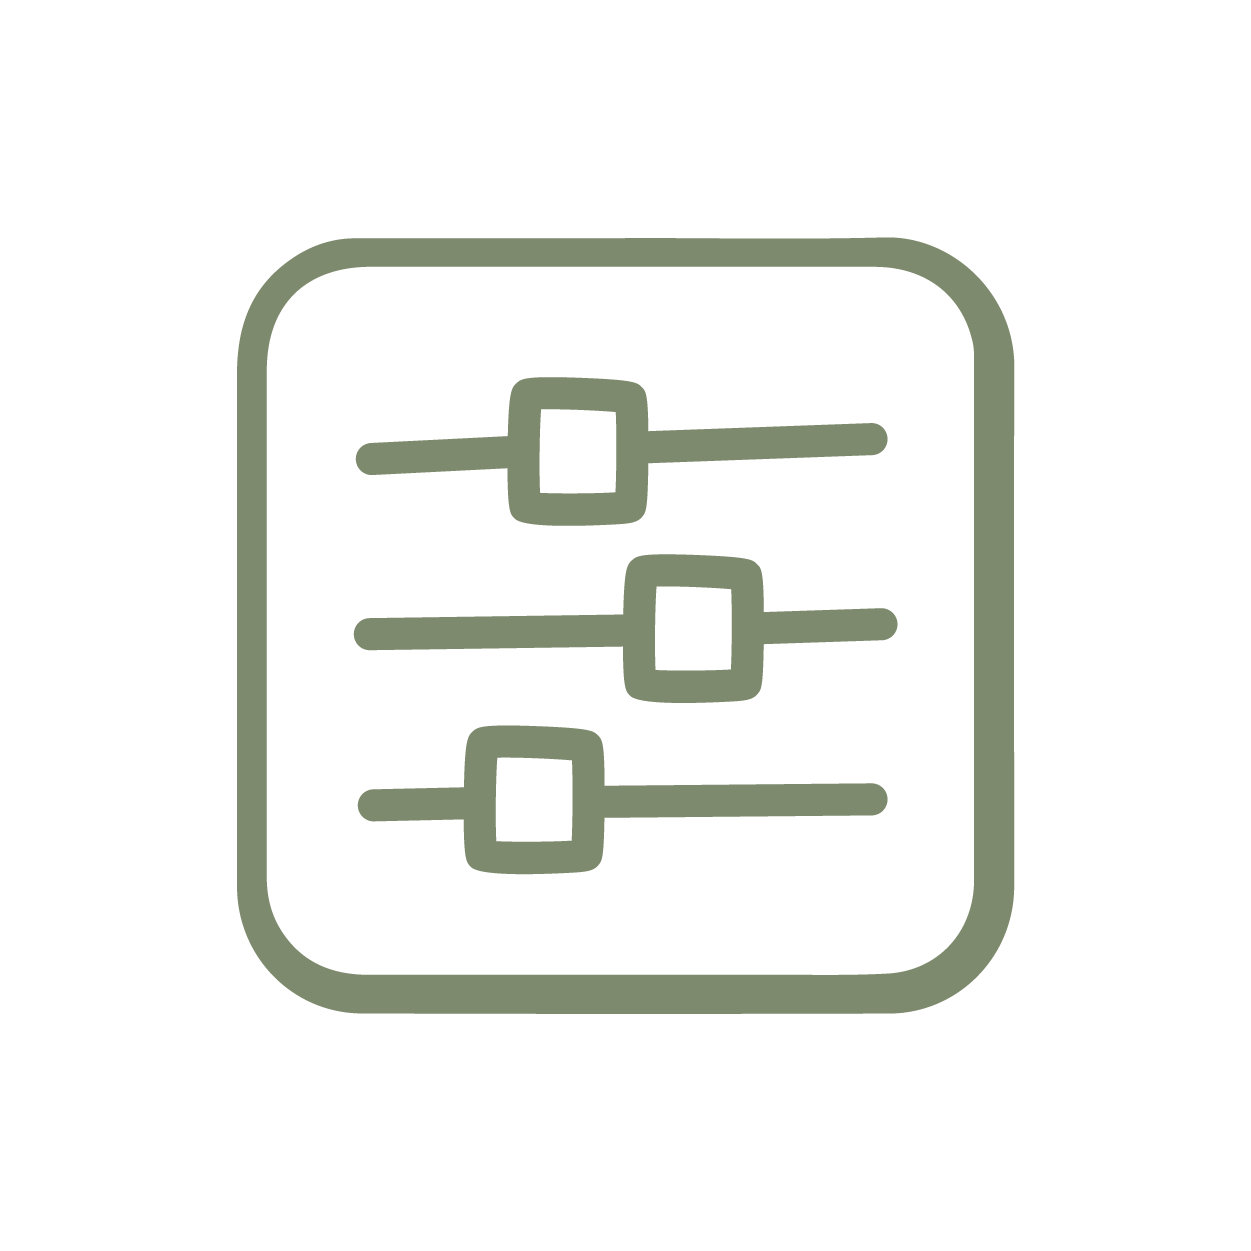 ascend-icons-R2-small-07.png